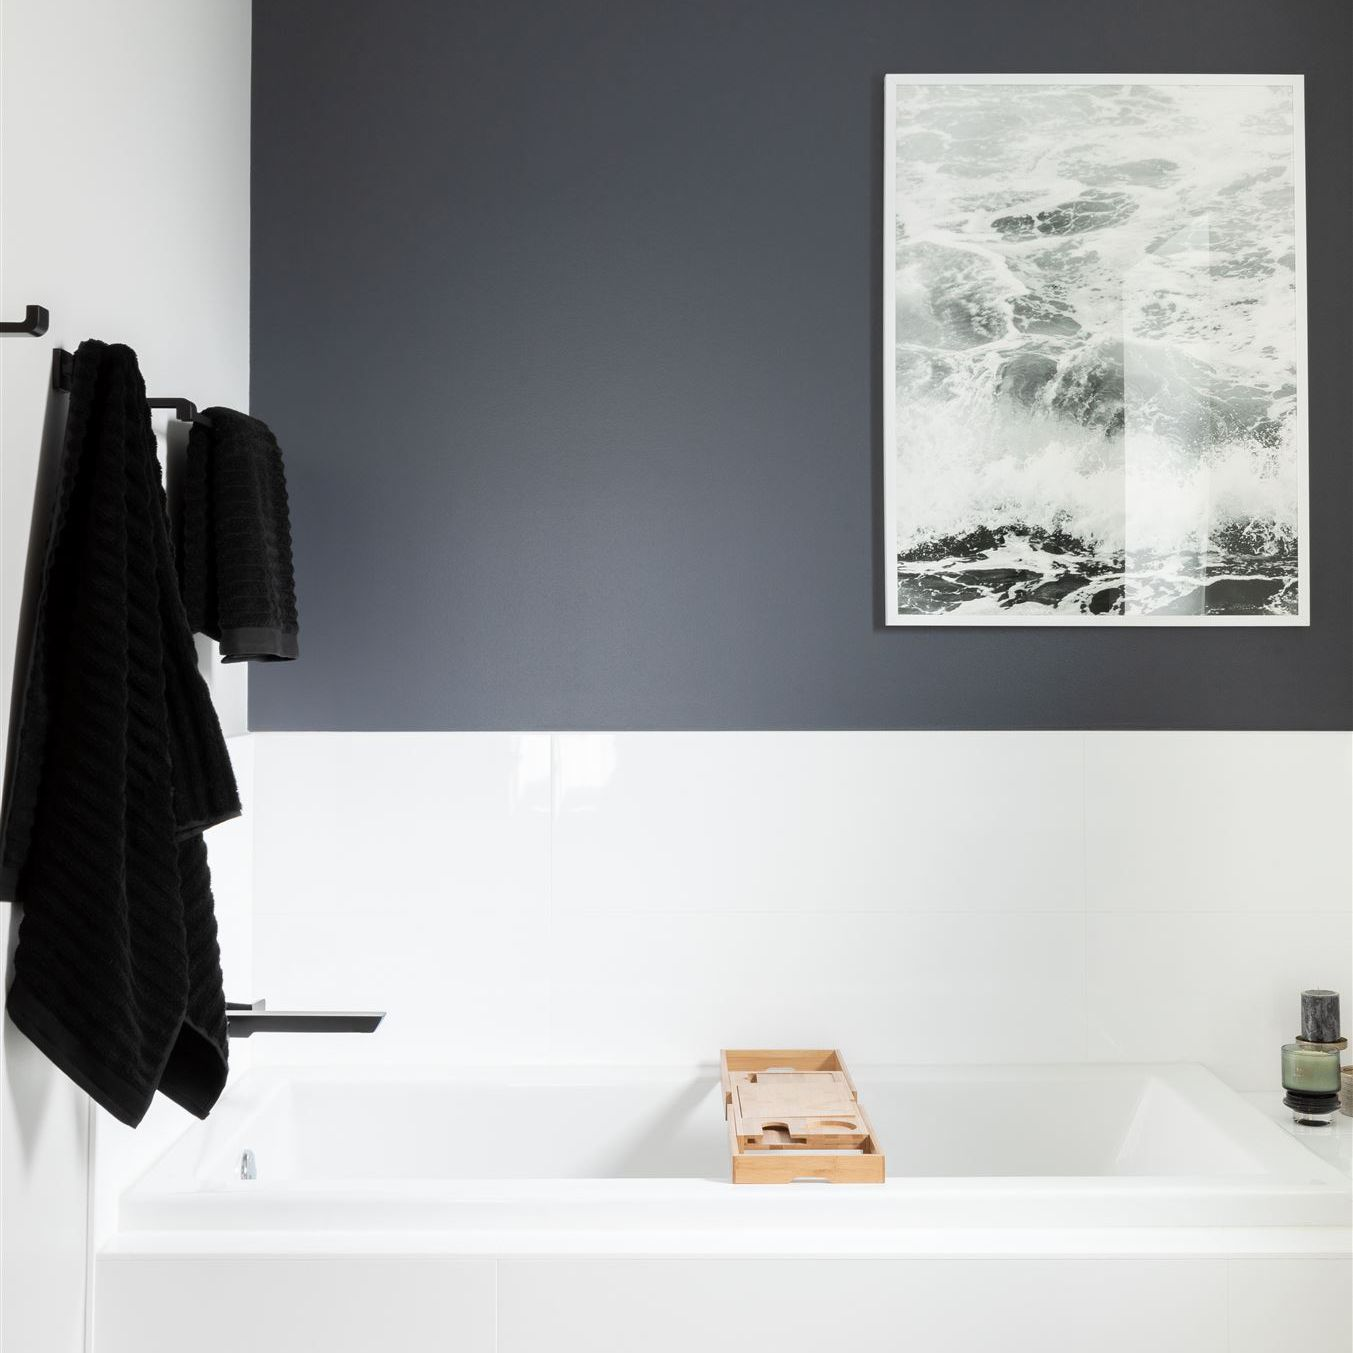 A bathroom with a black, white, and charcoal color palette